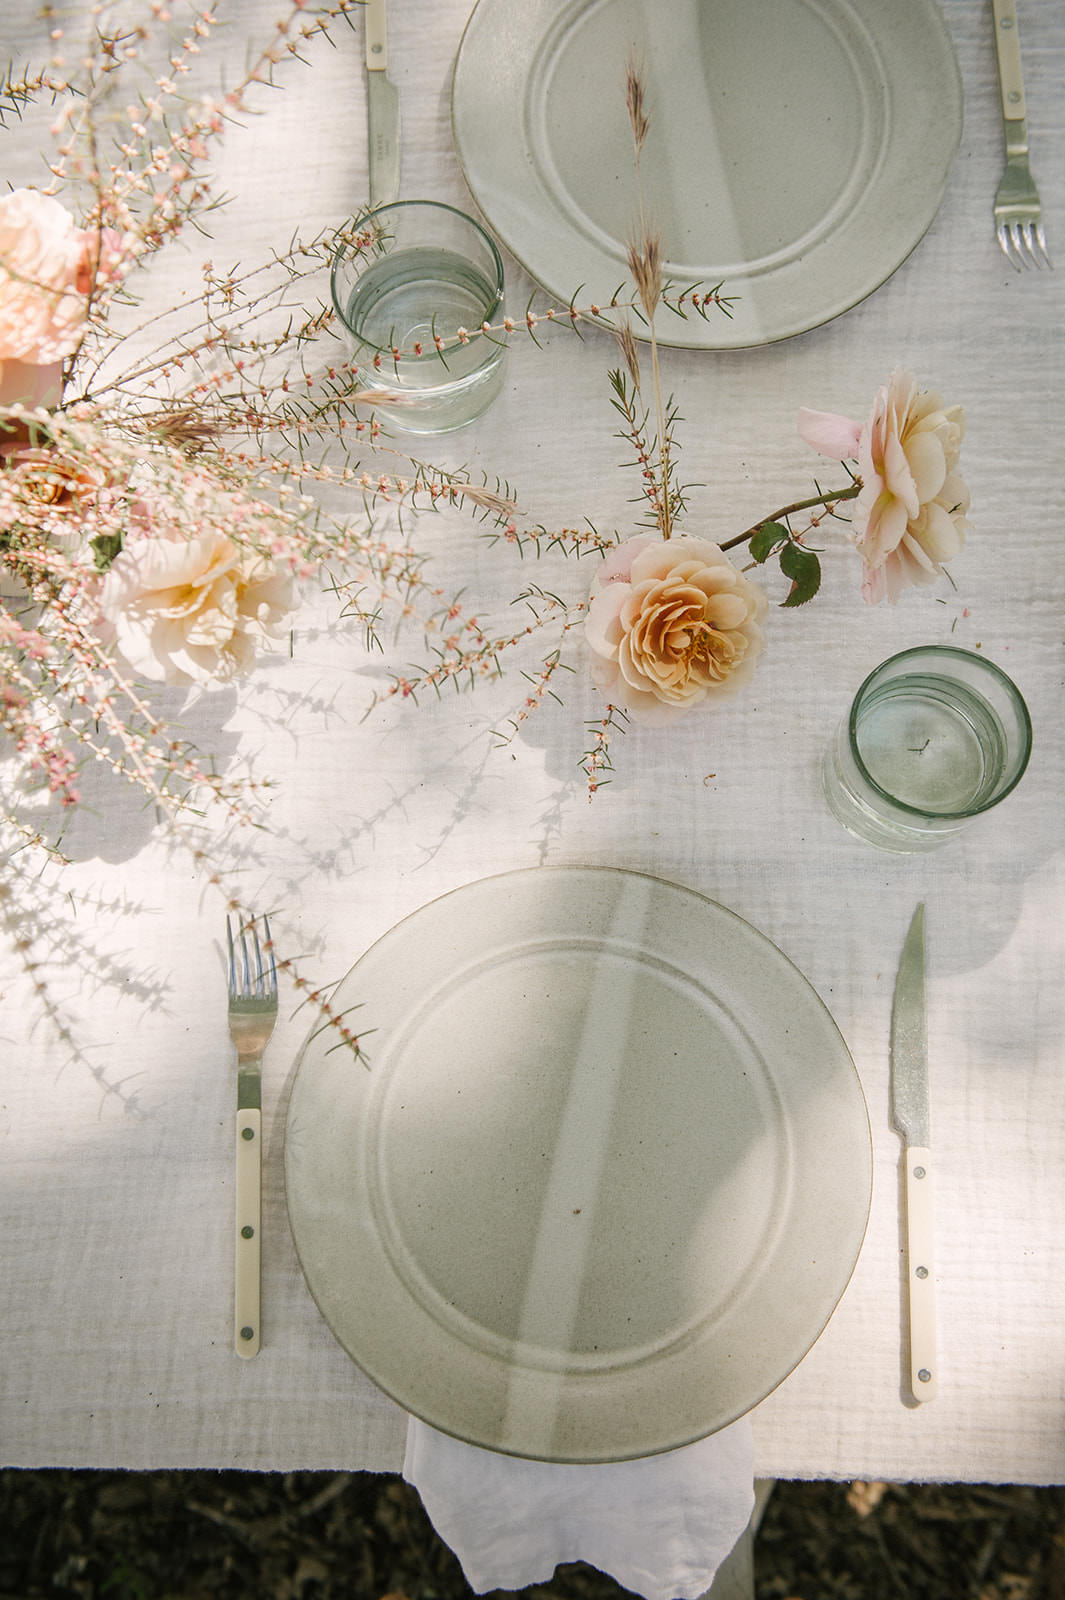 White layered tablescape with roses and linen for #entertaining #tablescape ideas by Jenni Kayne.